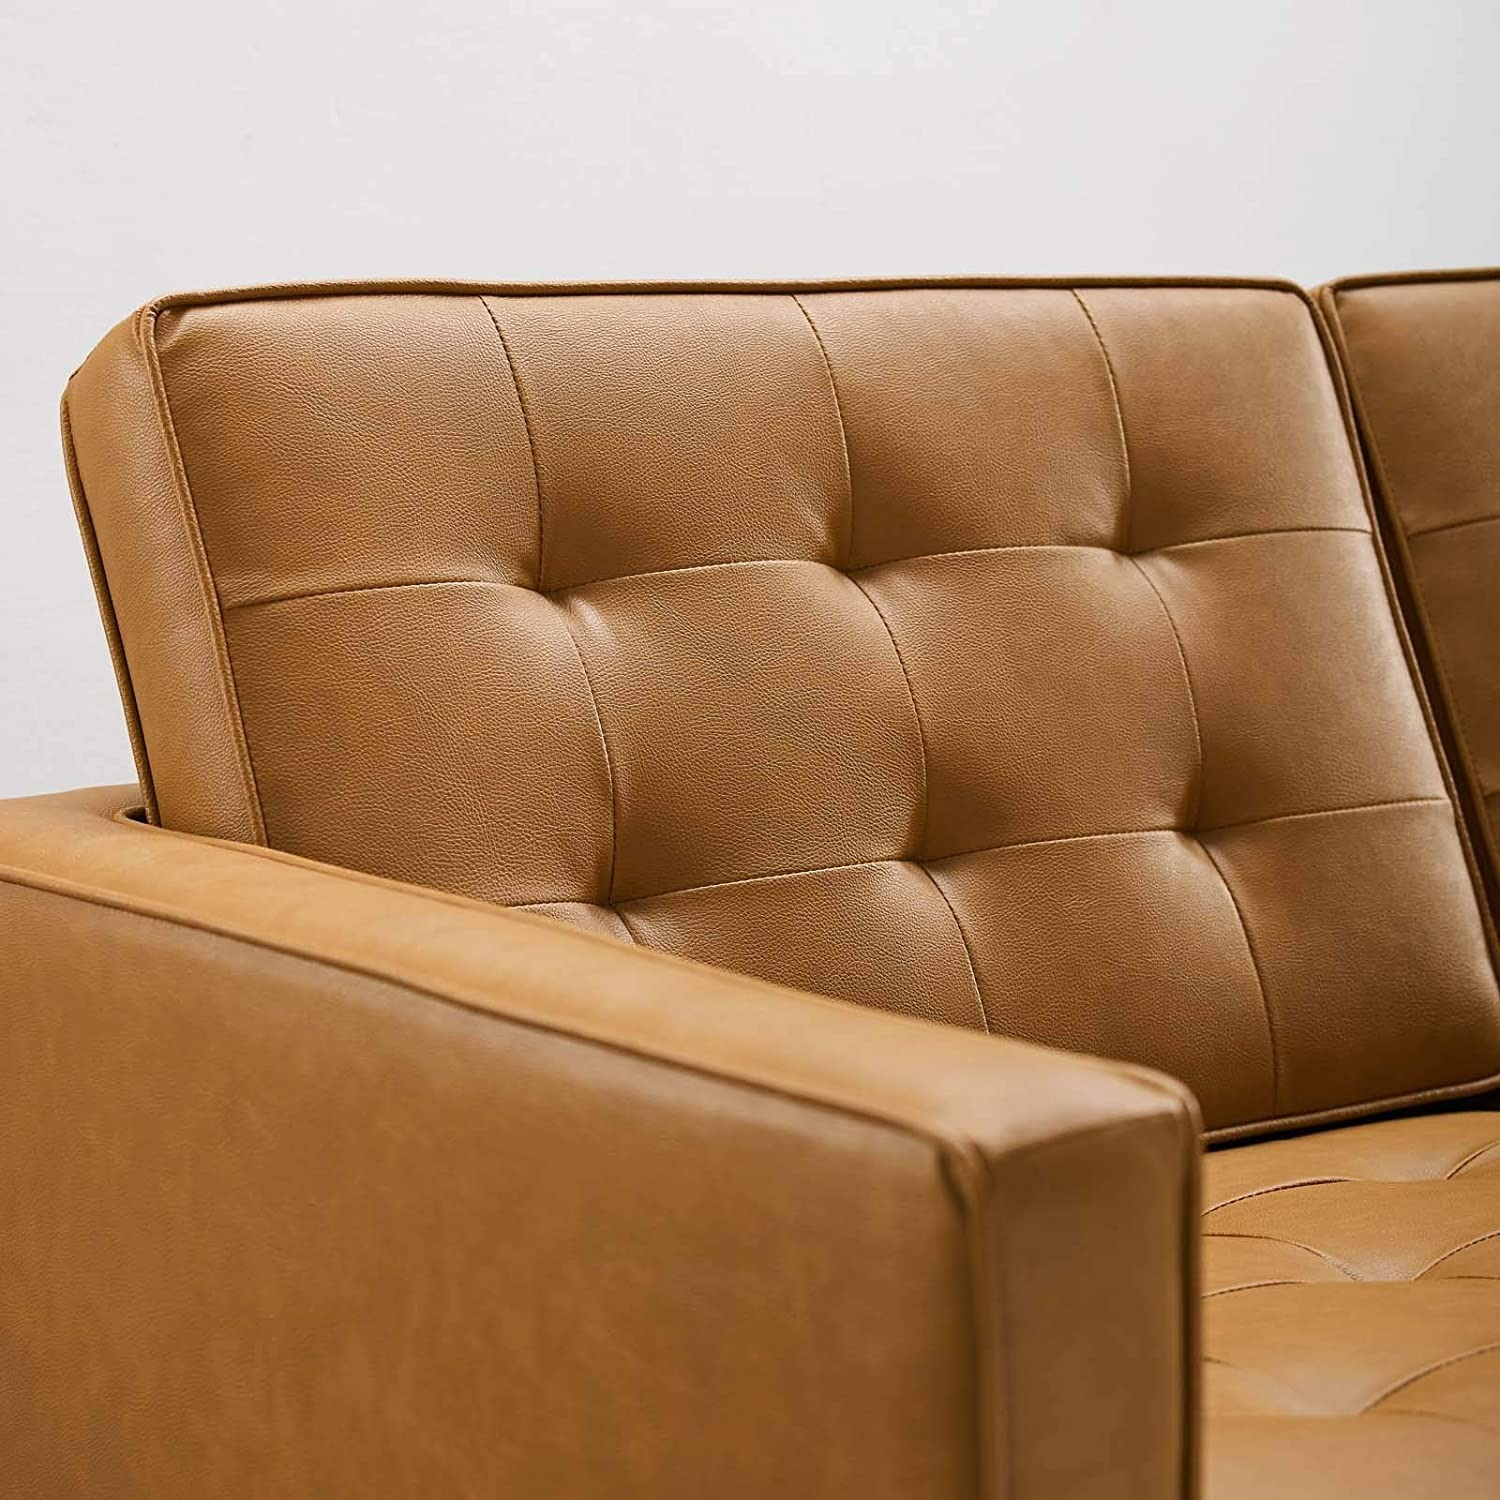 Modern Loveseat In Silver Tan Faux Leather Finish - image-3